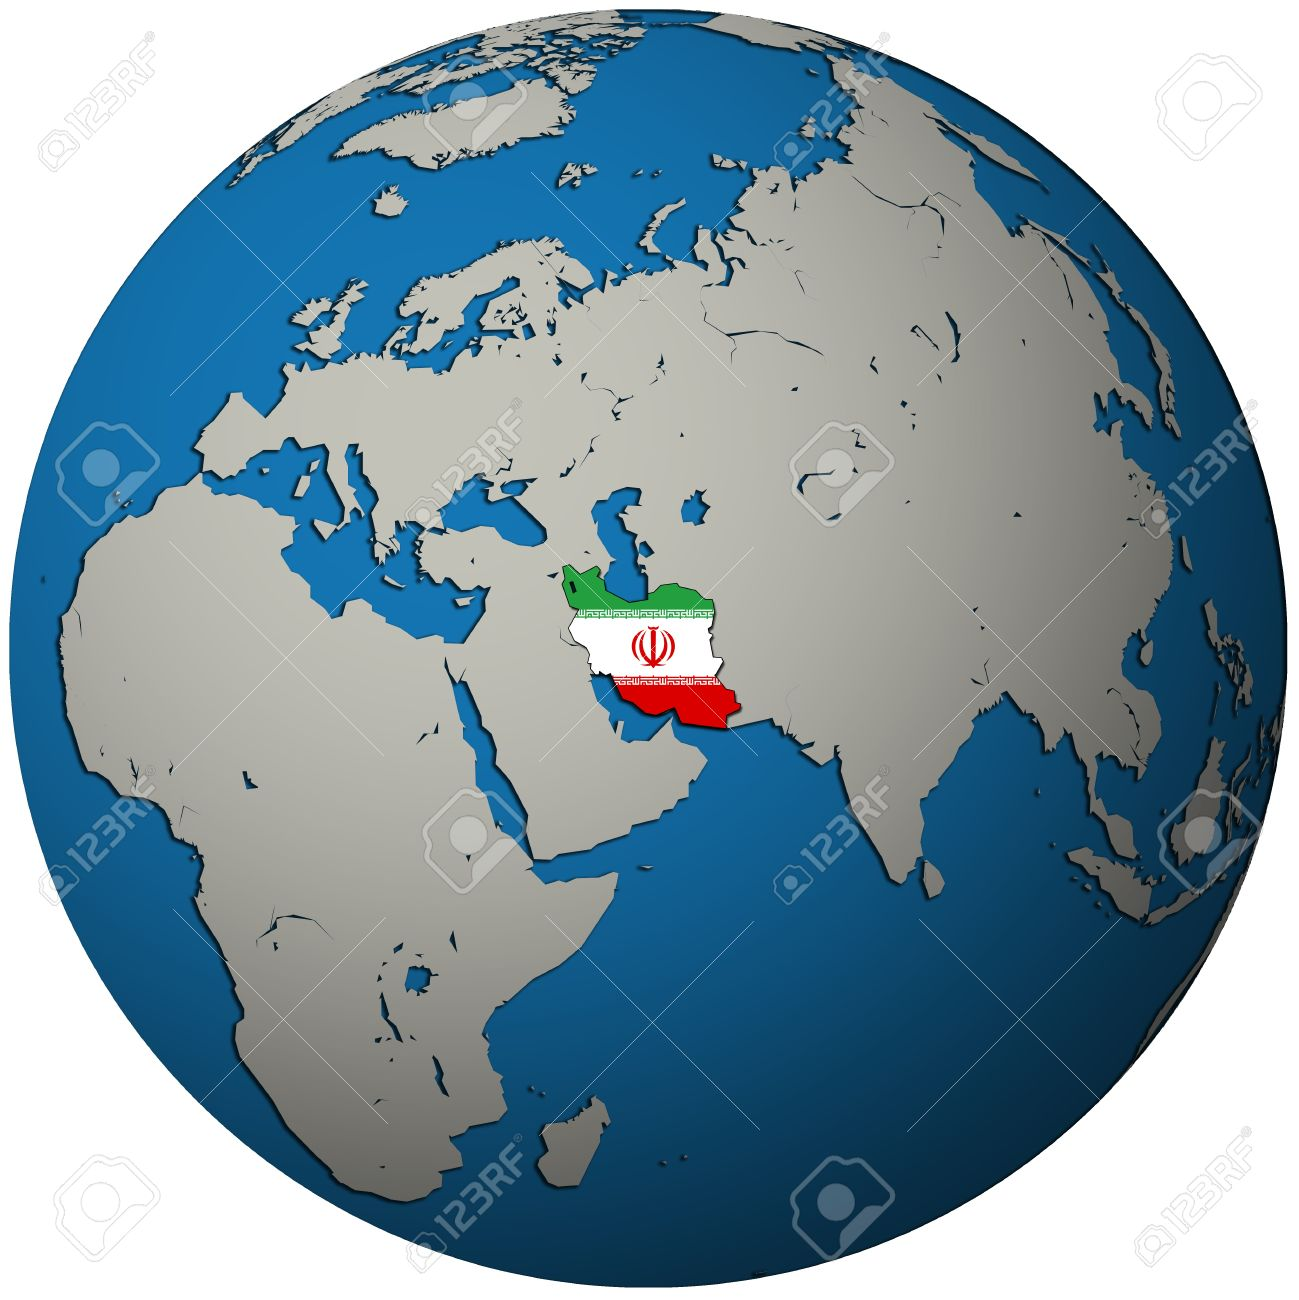 Iran Territory With Flag On Map Of Globe Stock Photo, Picture And